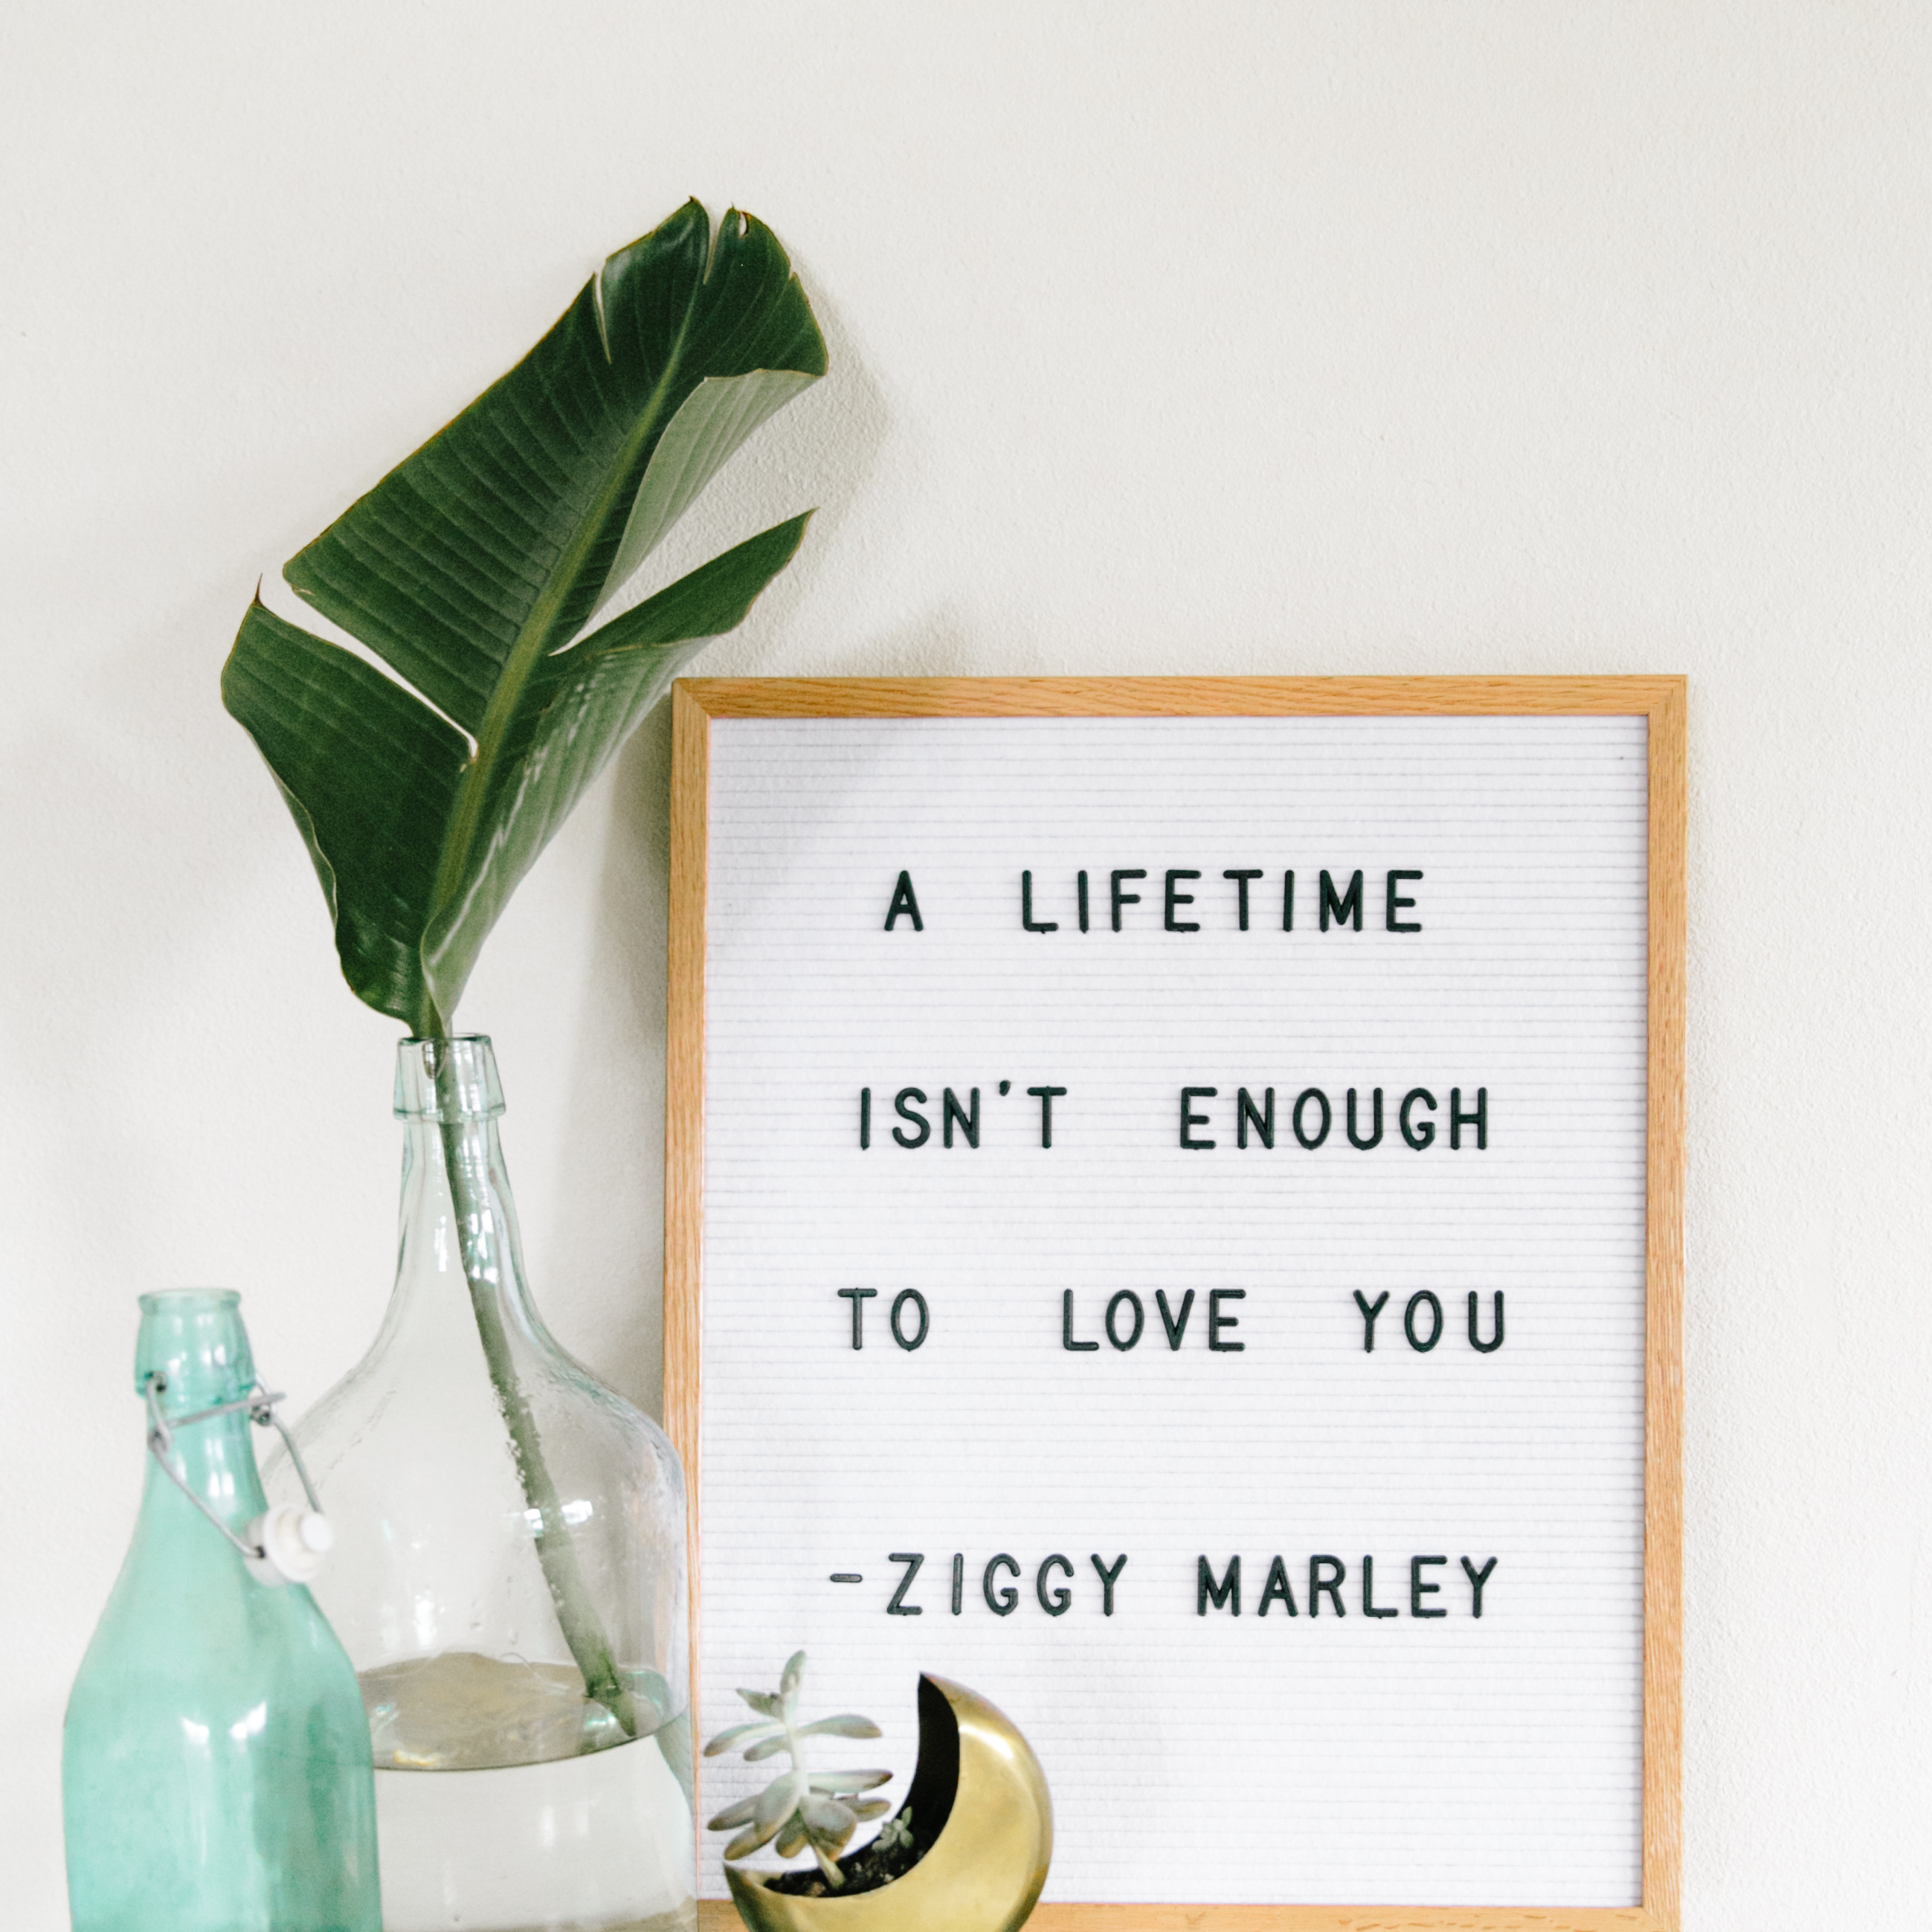 Letterfolk Board | A Lifetime Isn't Enough To Love You | Ziggy Marley Quote | Home Inspiration | Home Renovation via @elanaloo + elanaloo.com